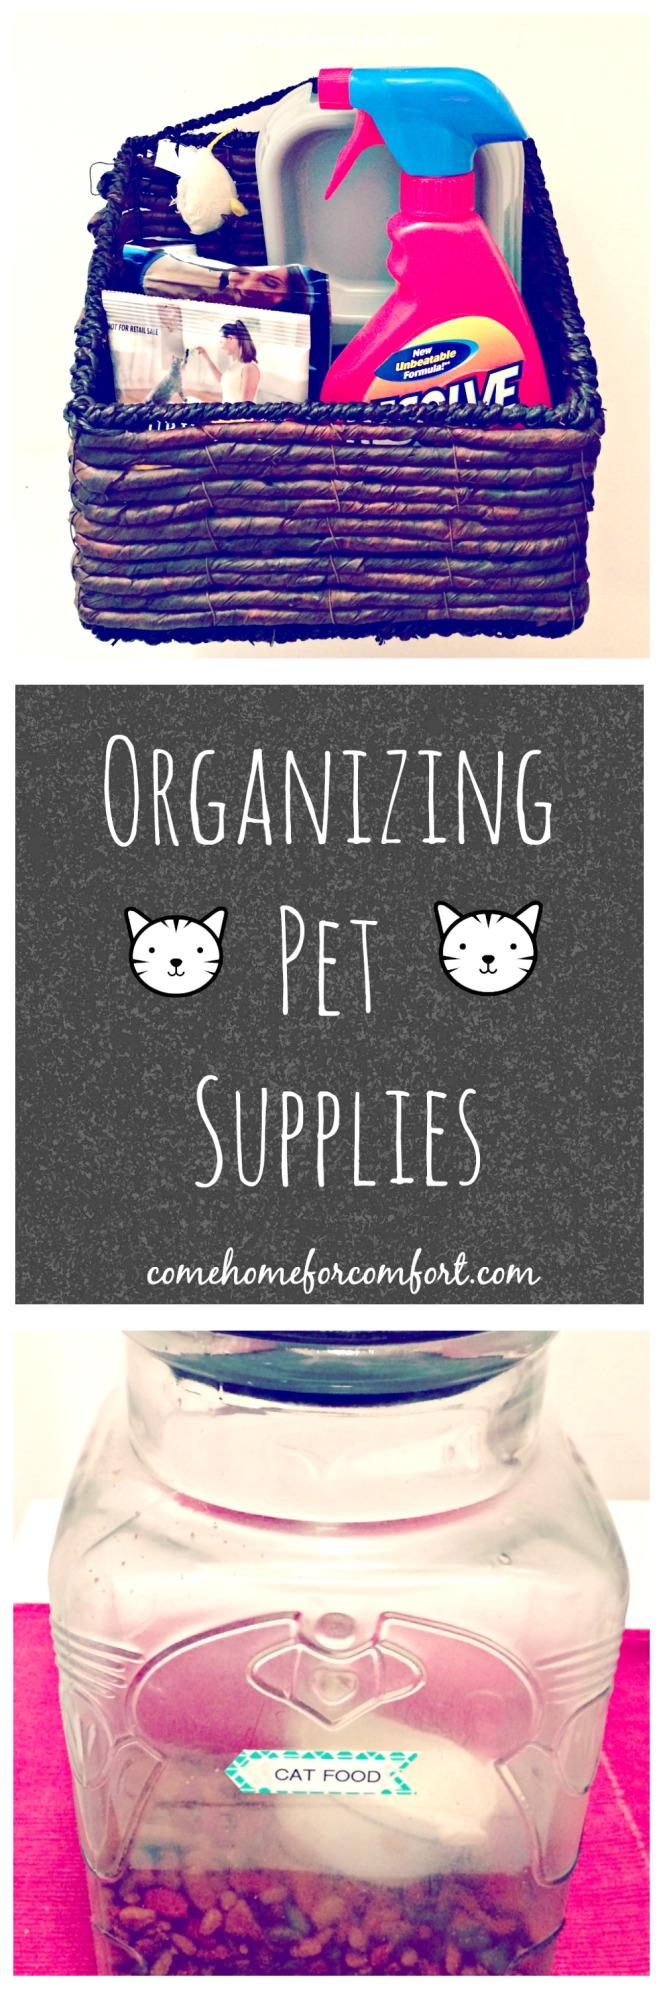 Tips for keeping pet food and supplies organized and easy to find!